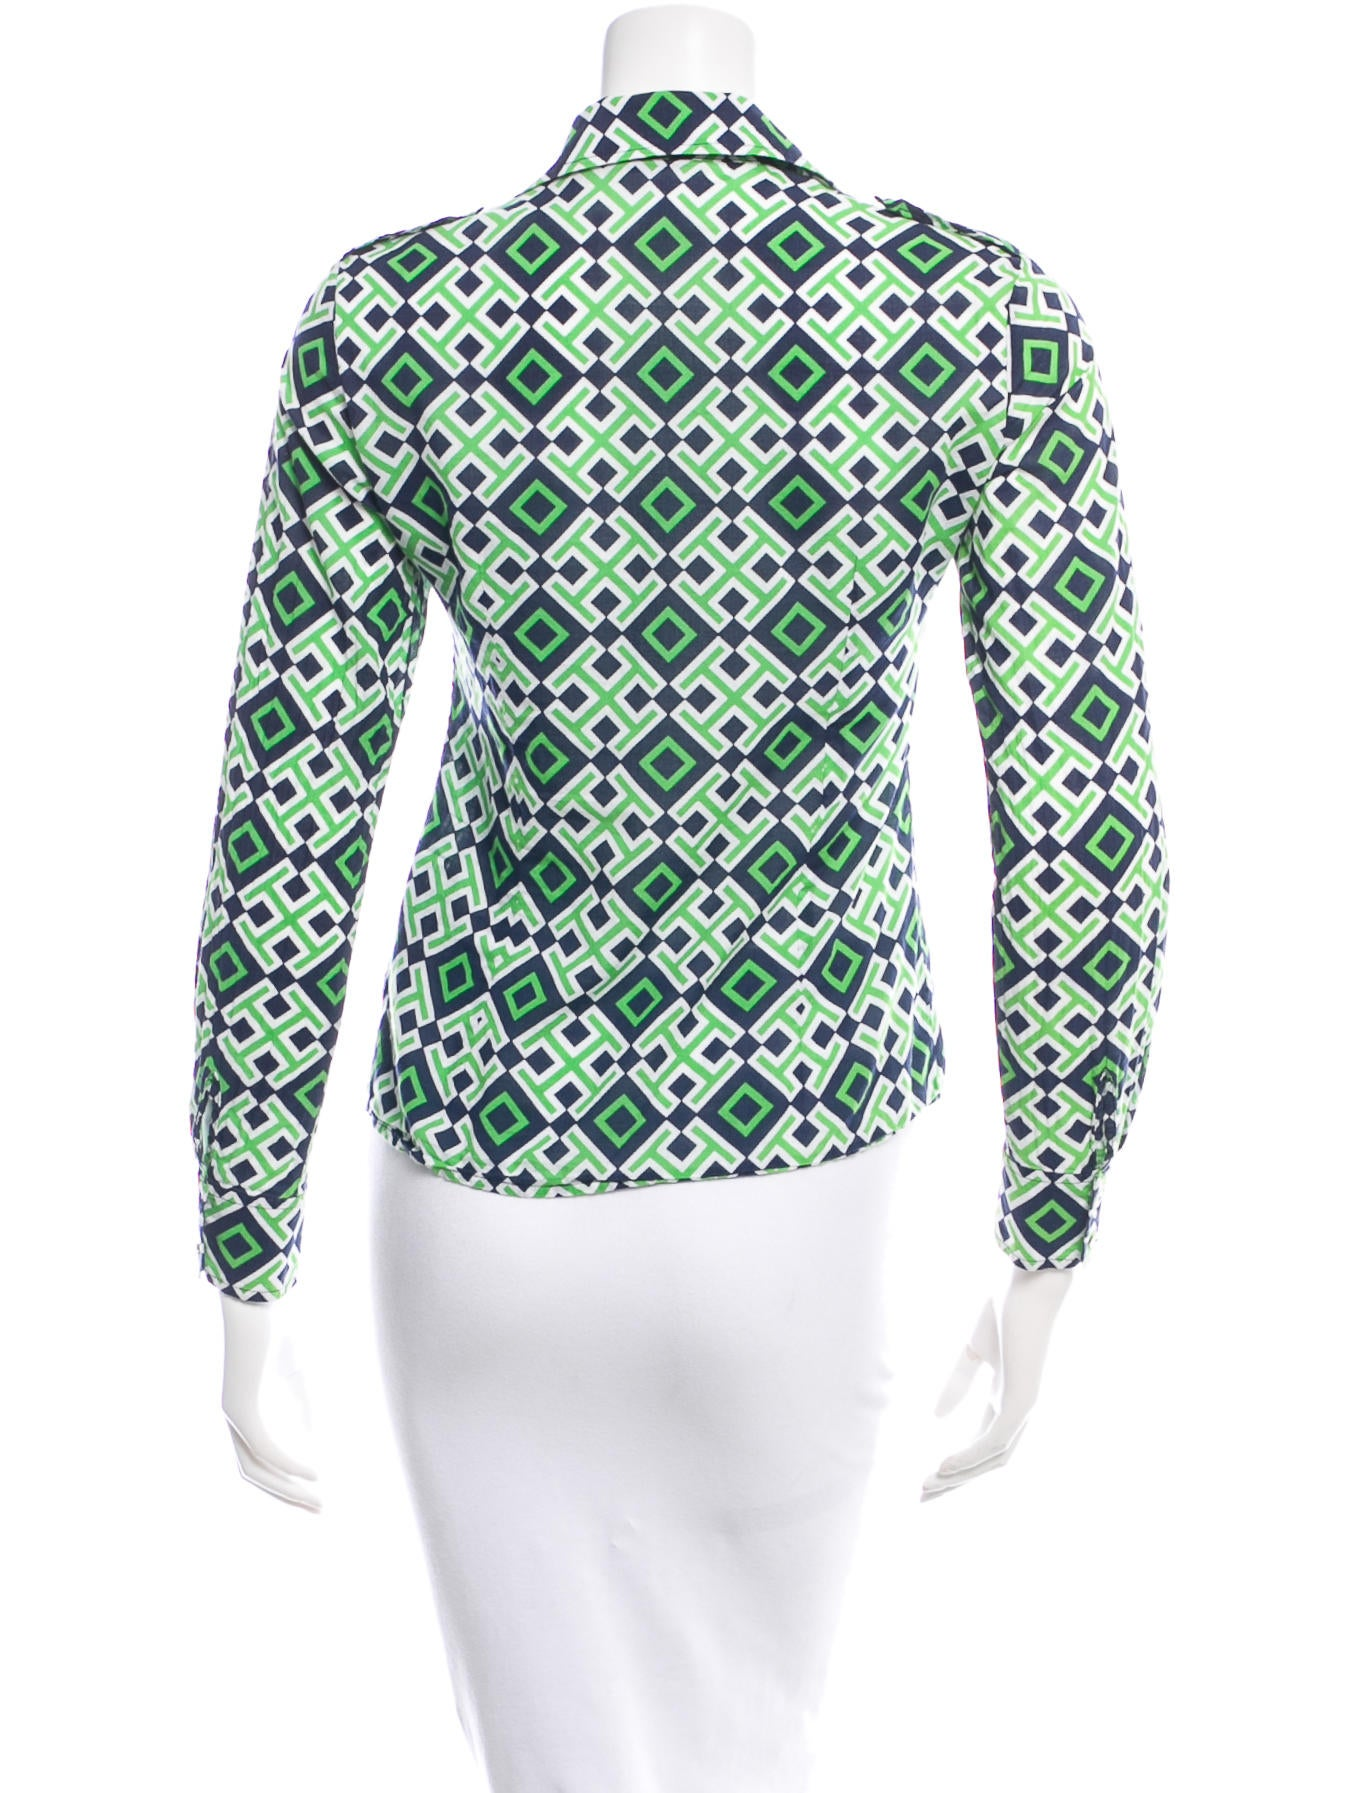 Tory Burch Abstract Print Button Up Shirt Clothing